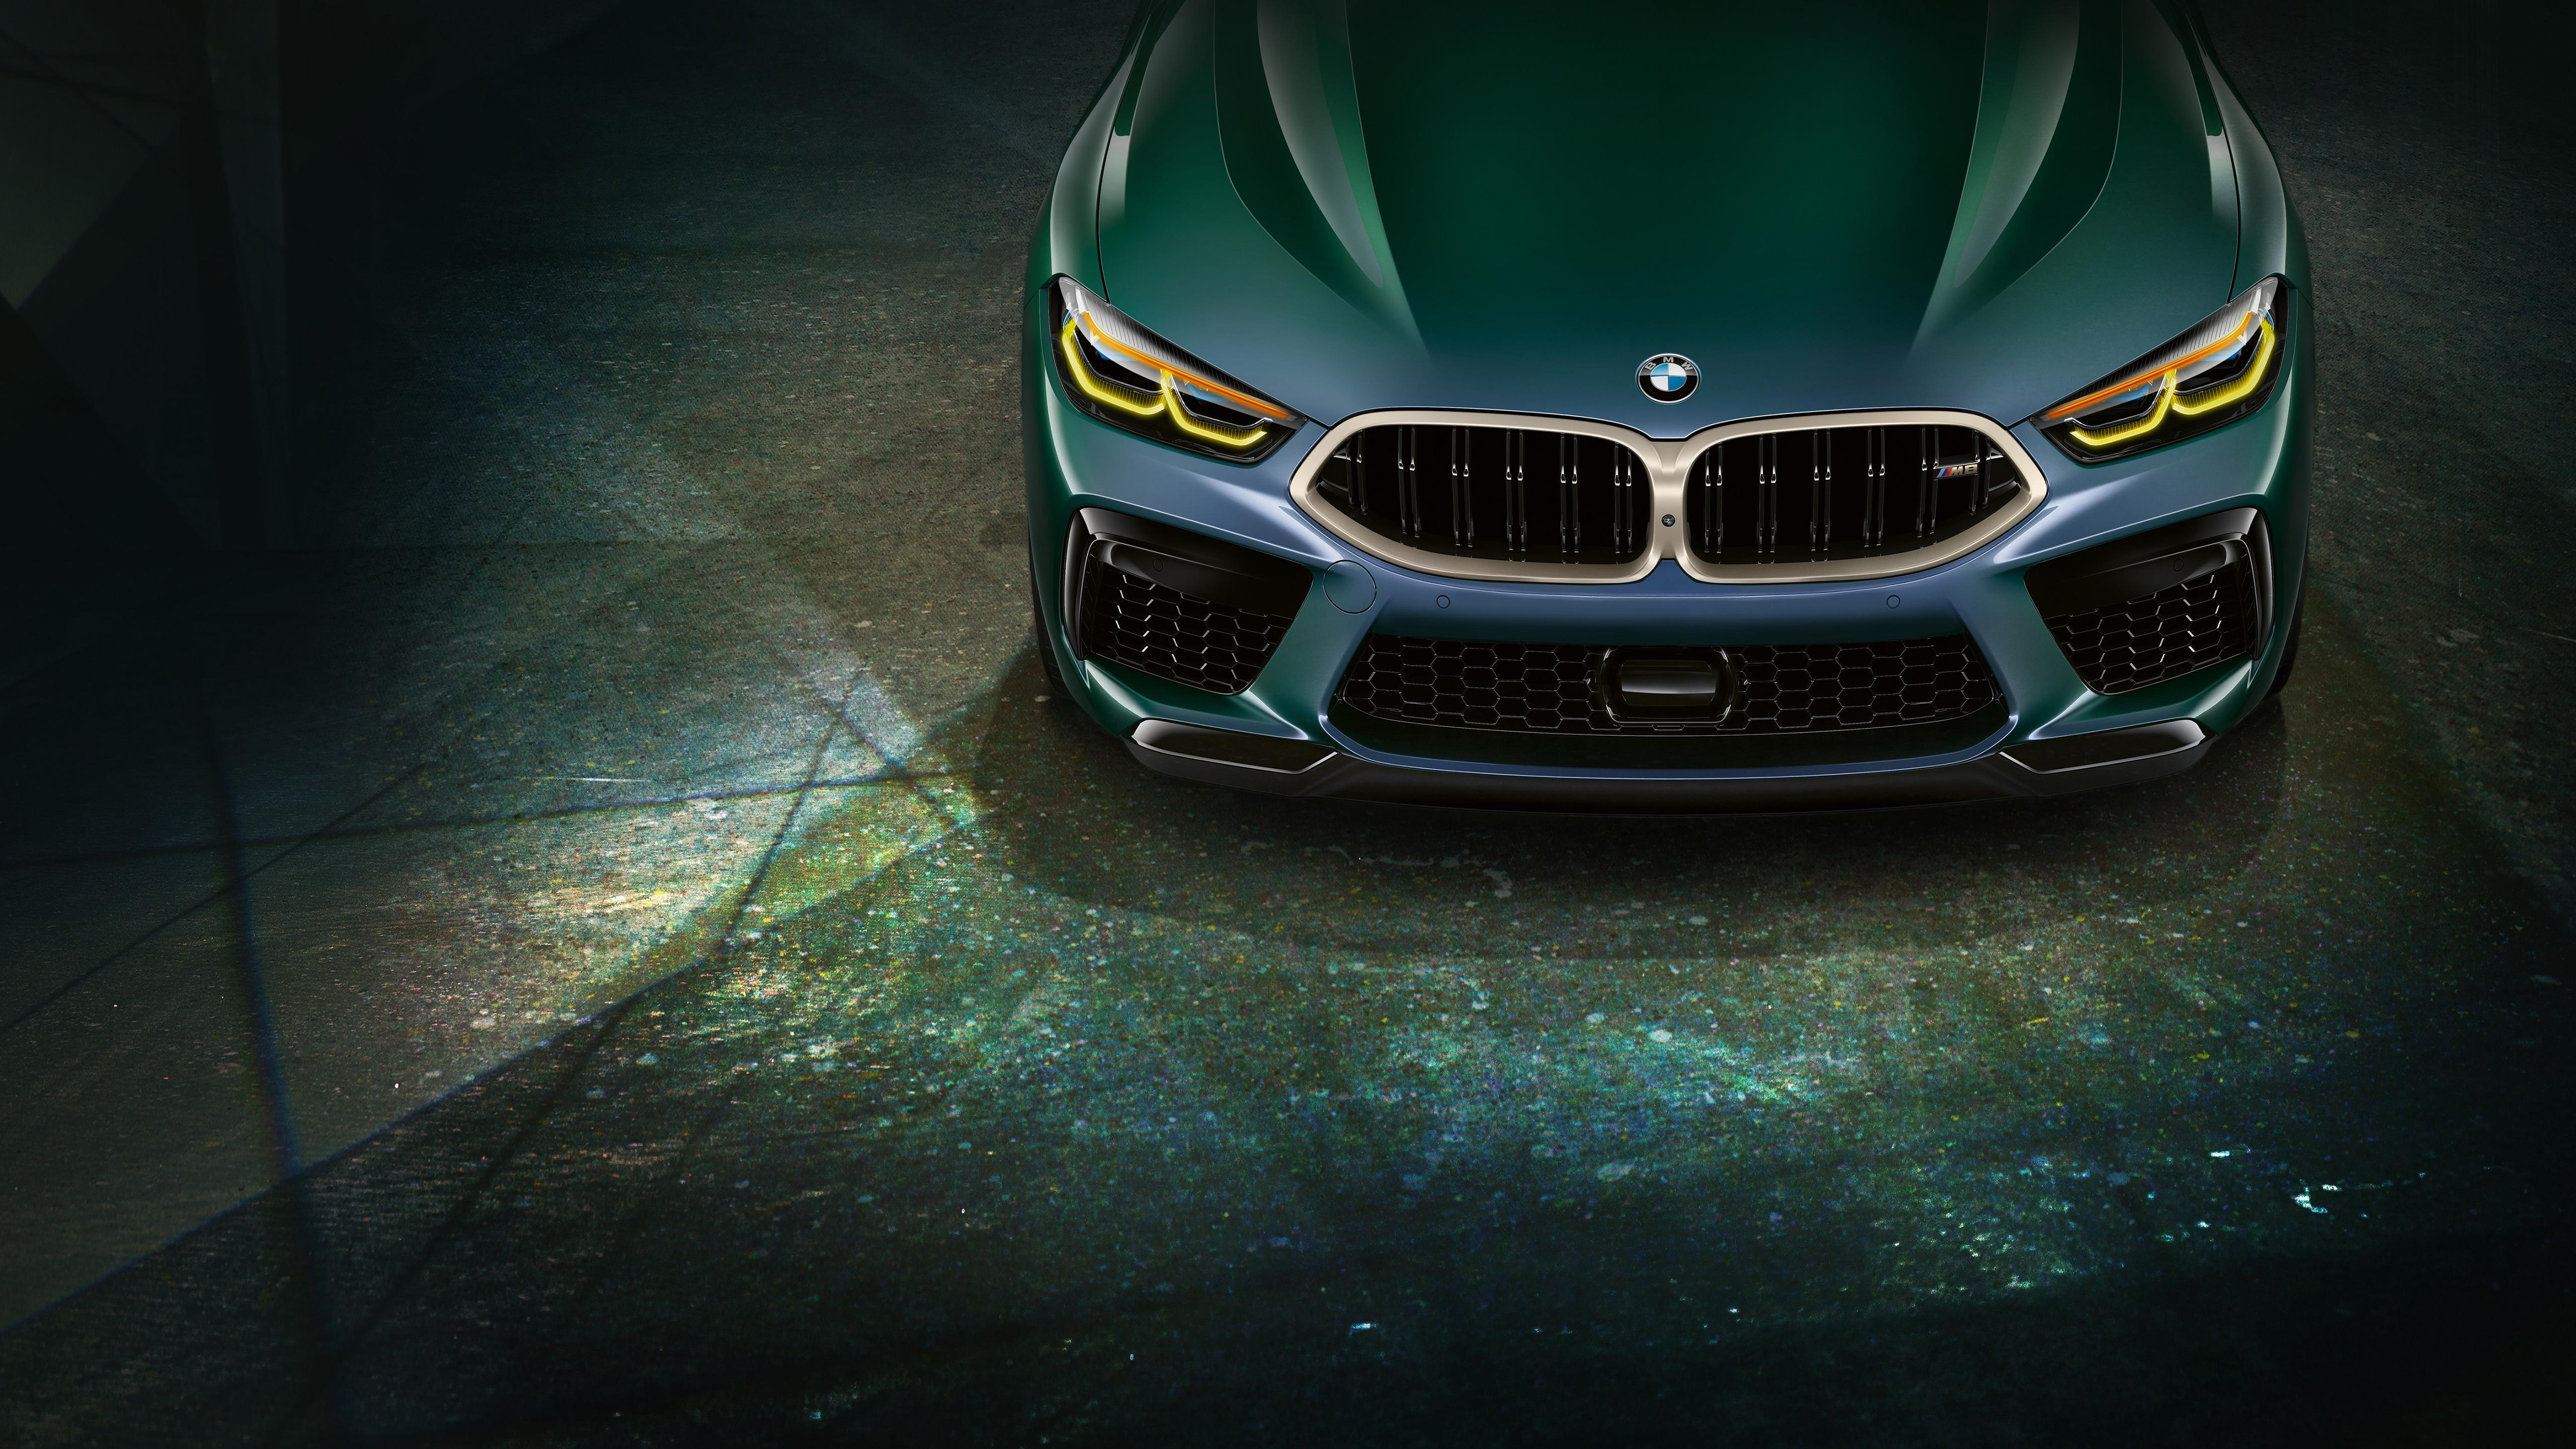 2020 BMW M8 Gran Coupe First Edition Wallpapers 5120x2880